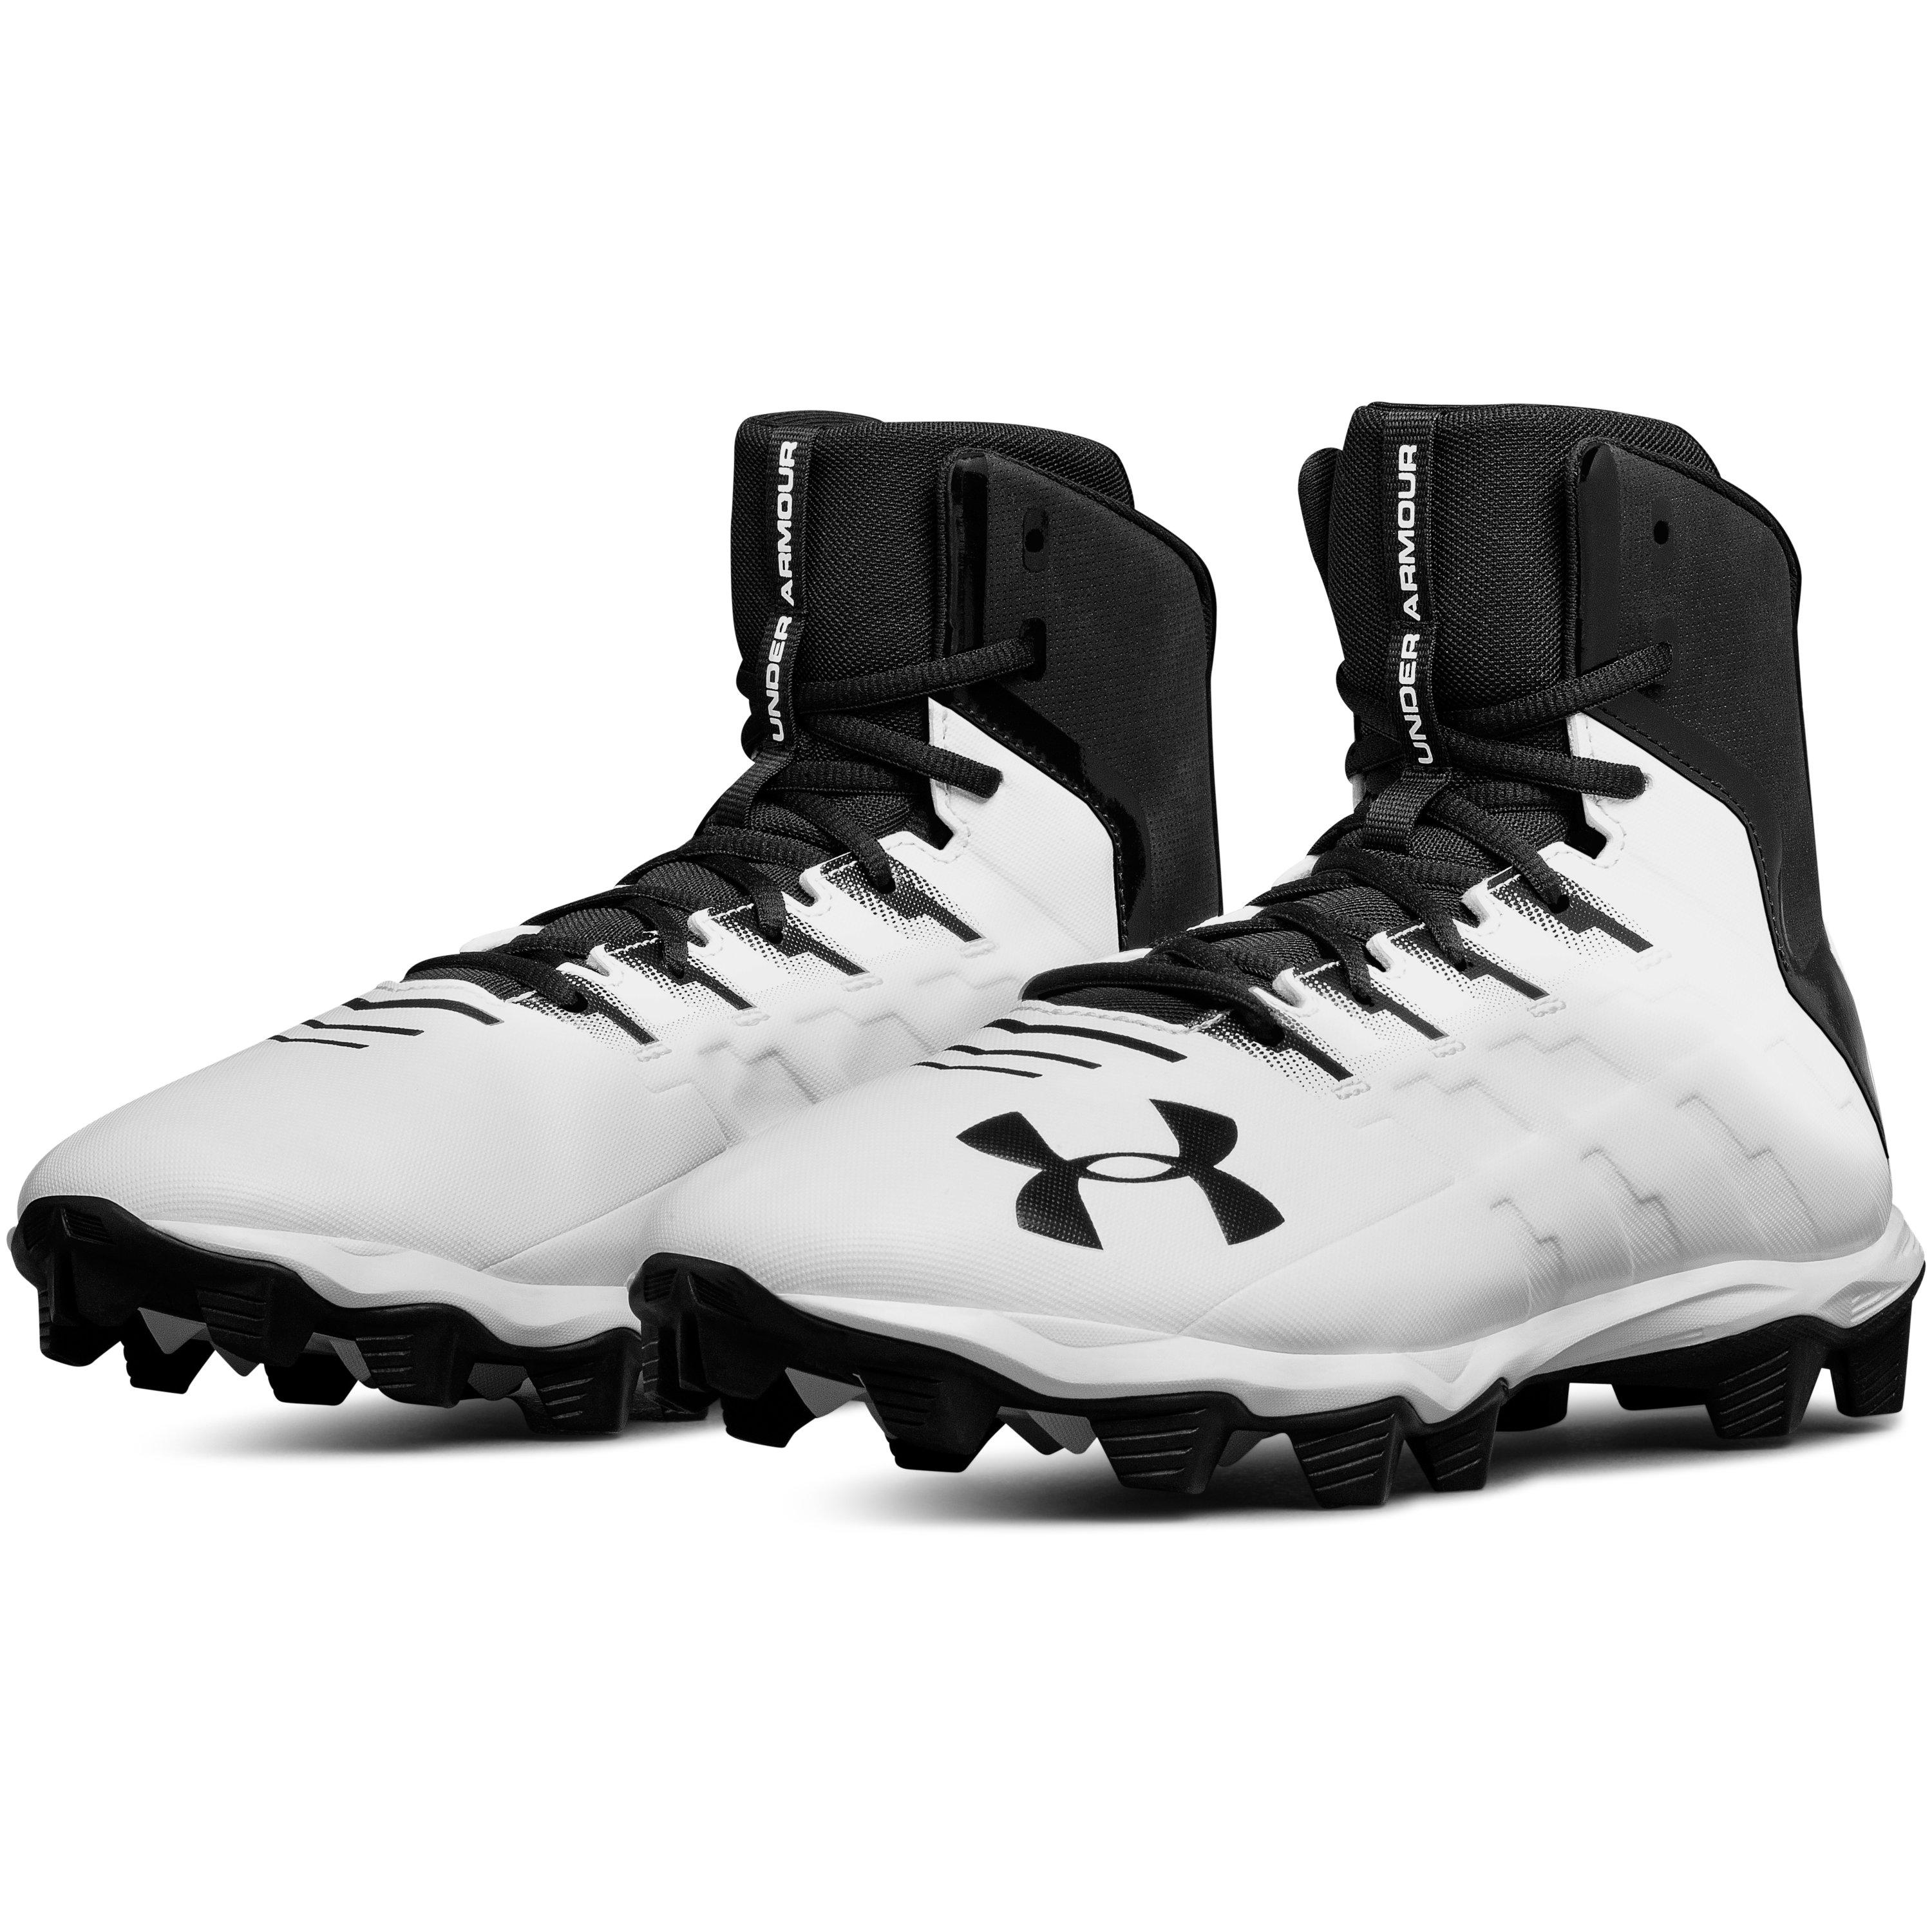 bc583f0b4da2 Under Armour Men's Ua Renegade Rm Football Cleats in Black for Men ...